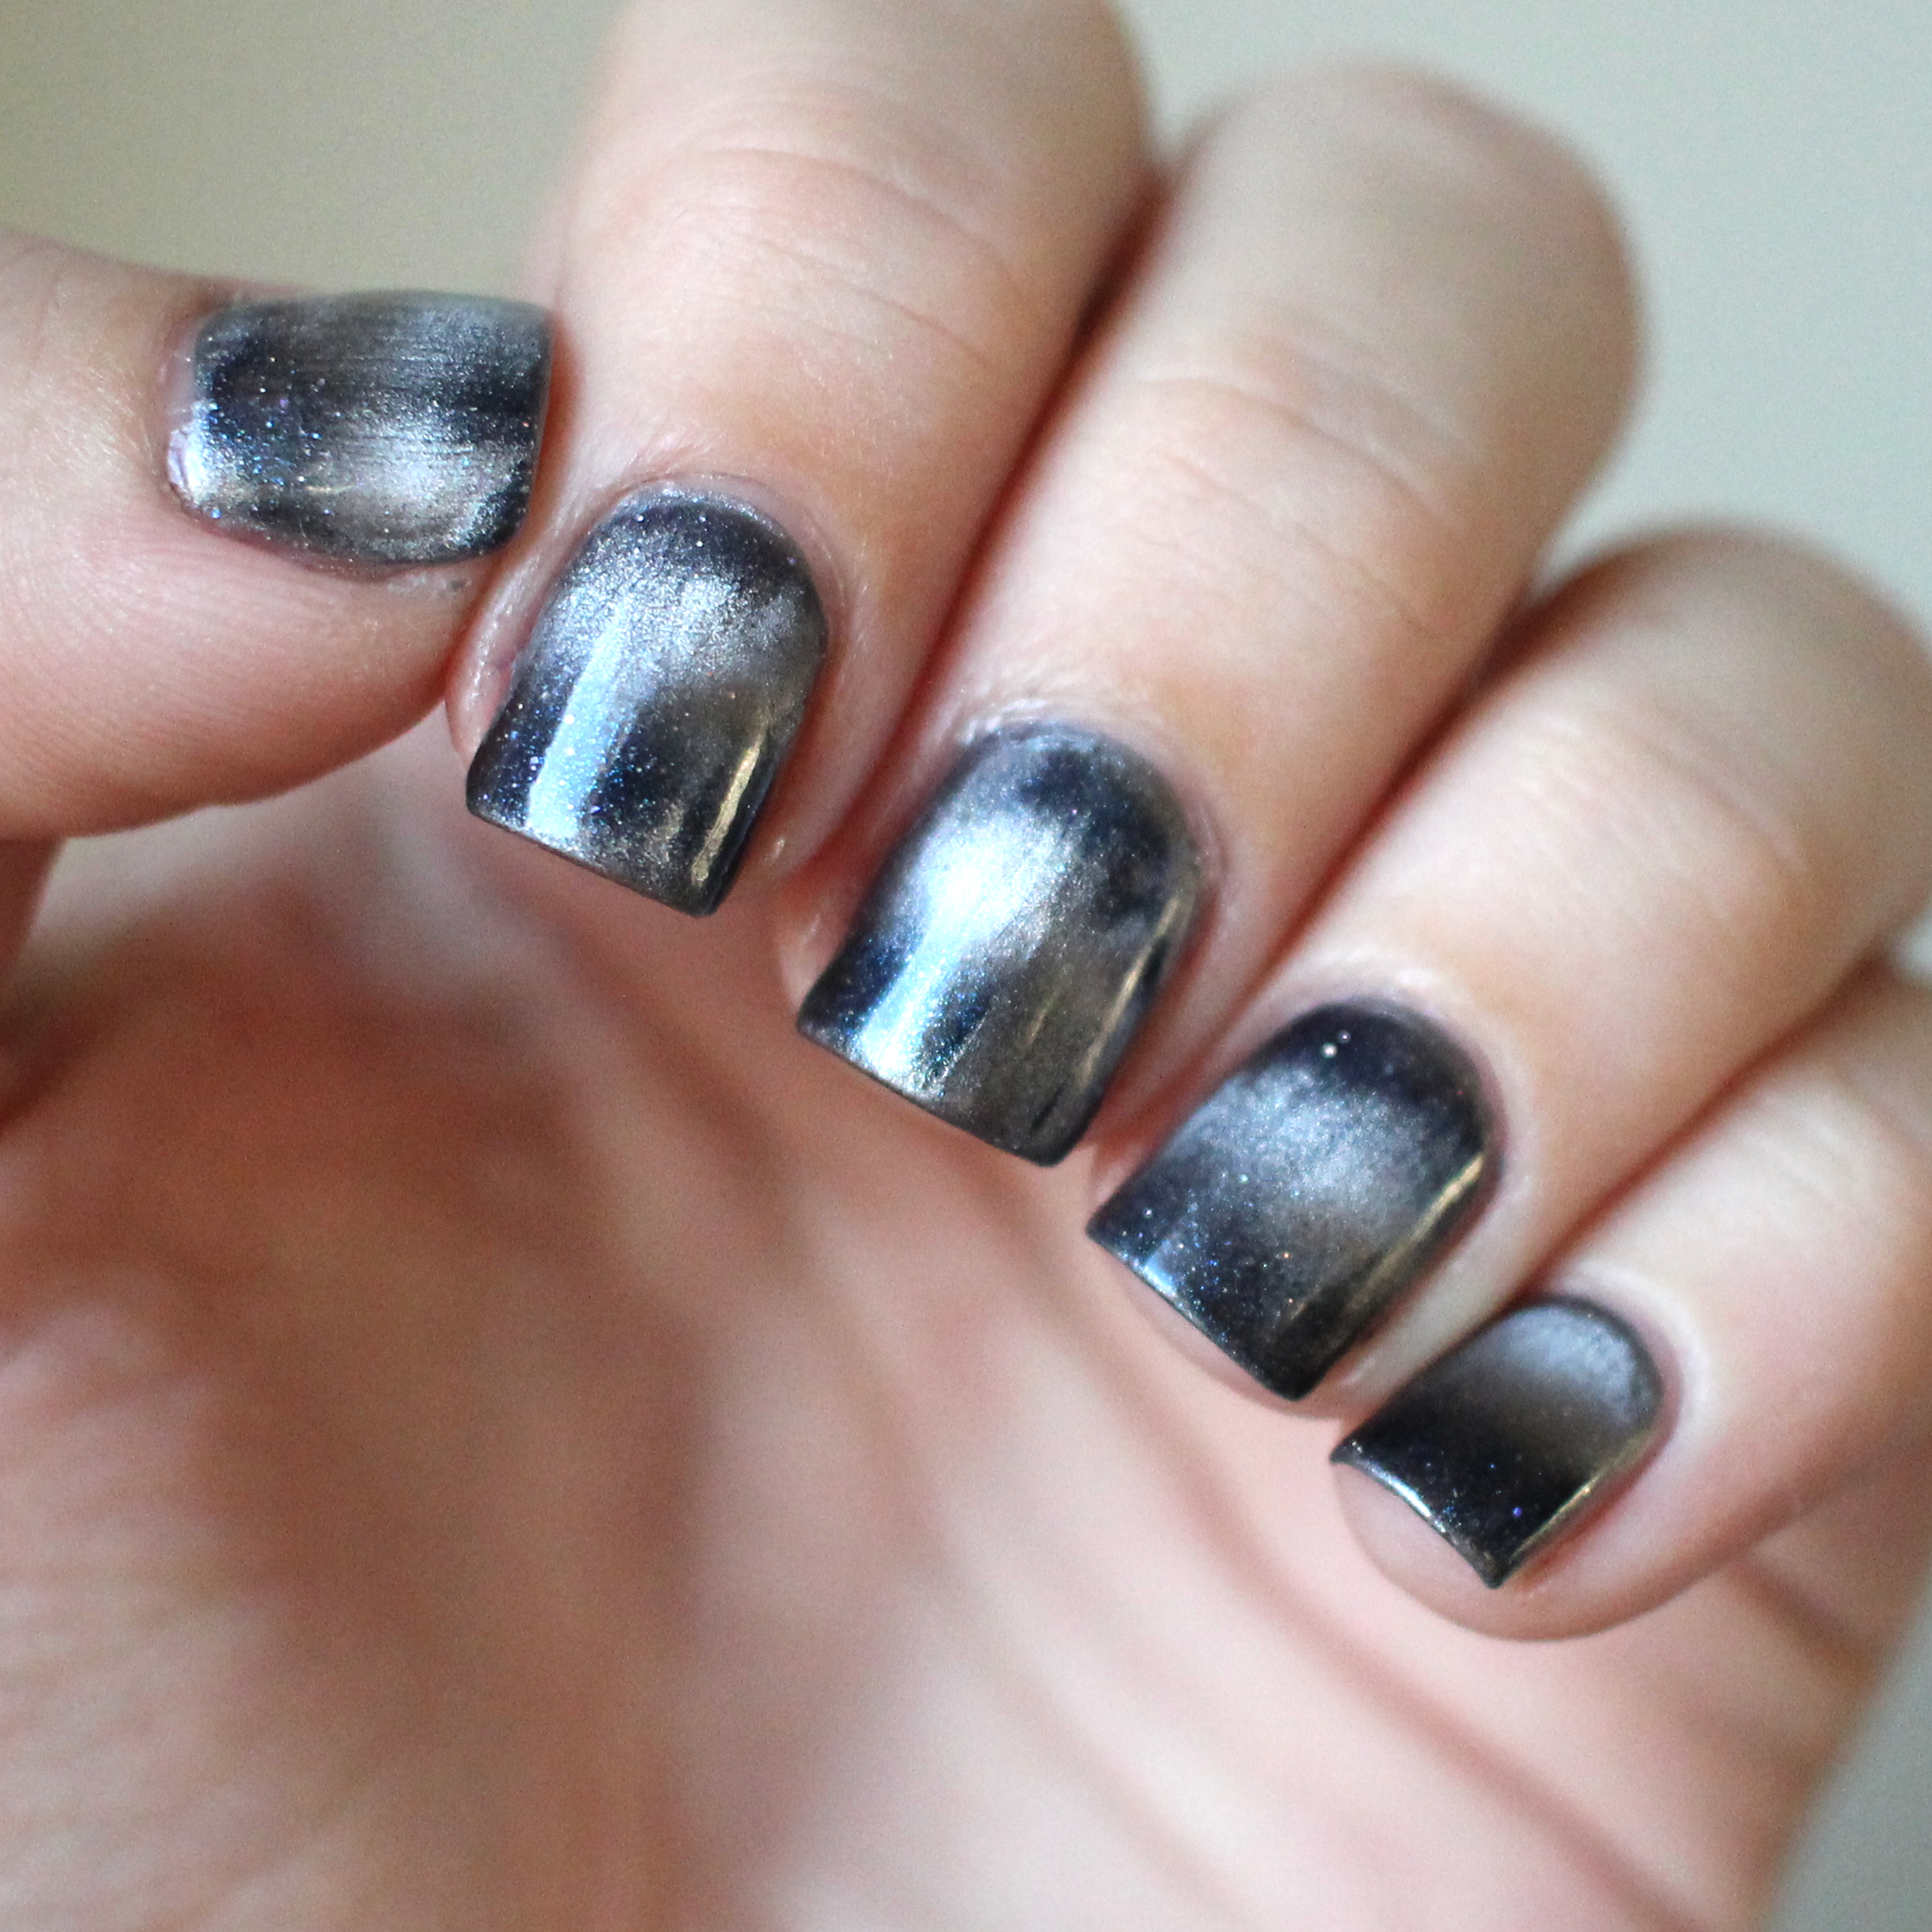 KBShimmer I Need Space \u0026 Astronaut Ice Cream for January